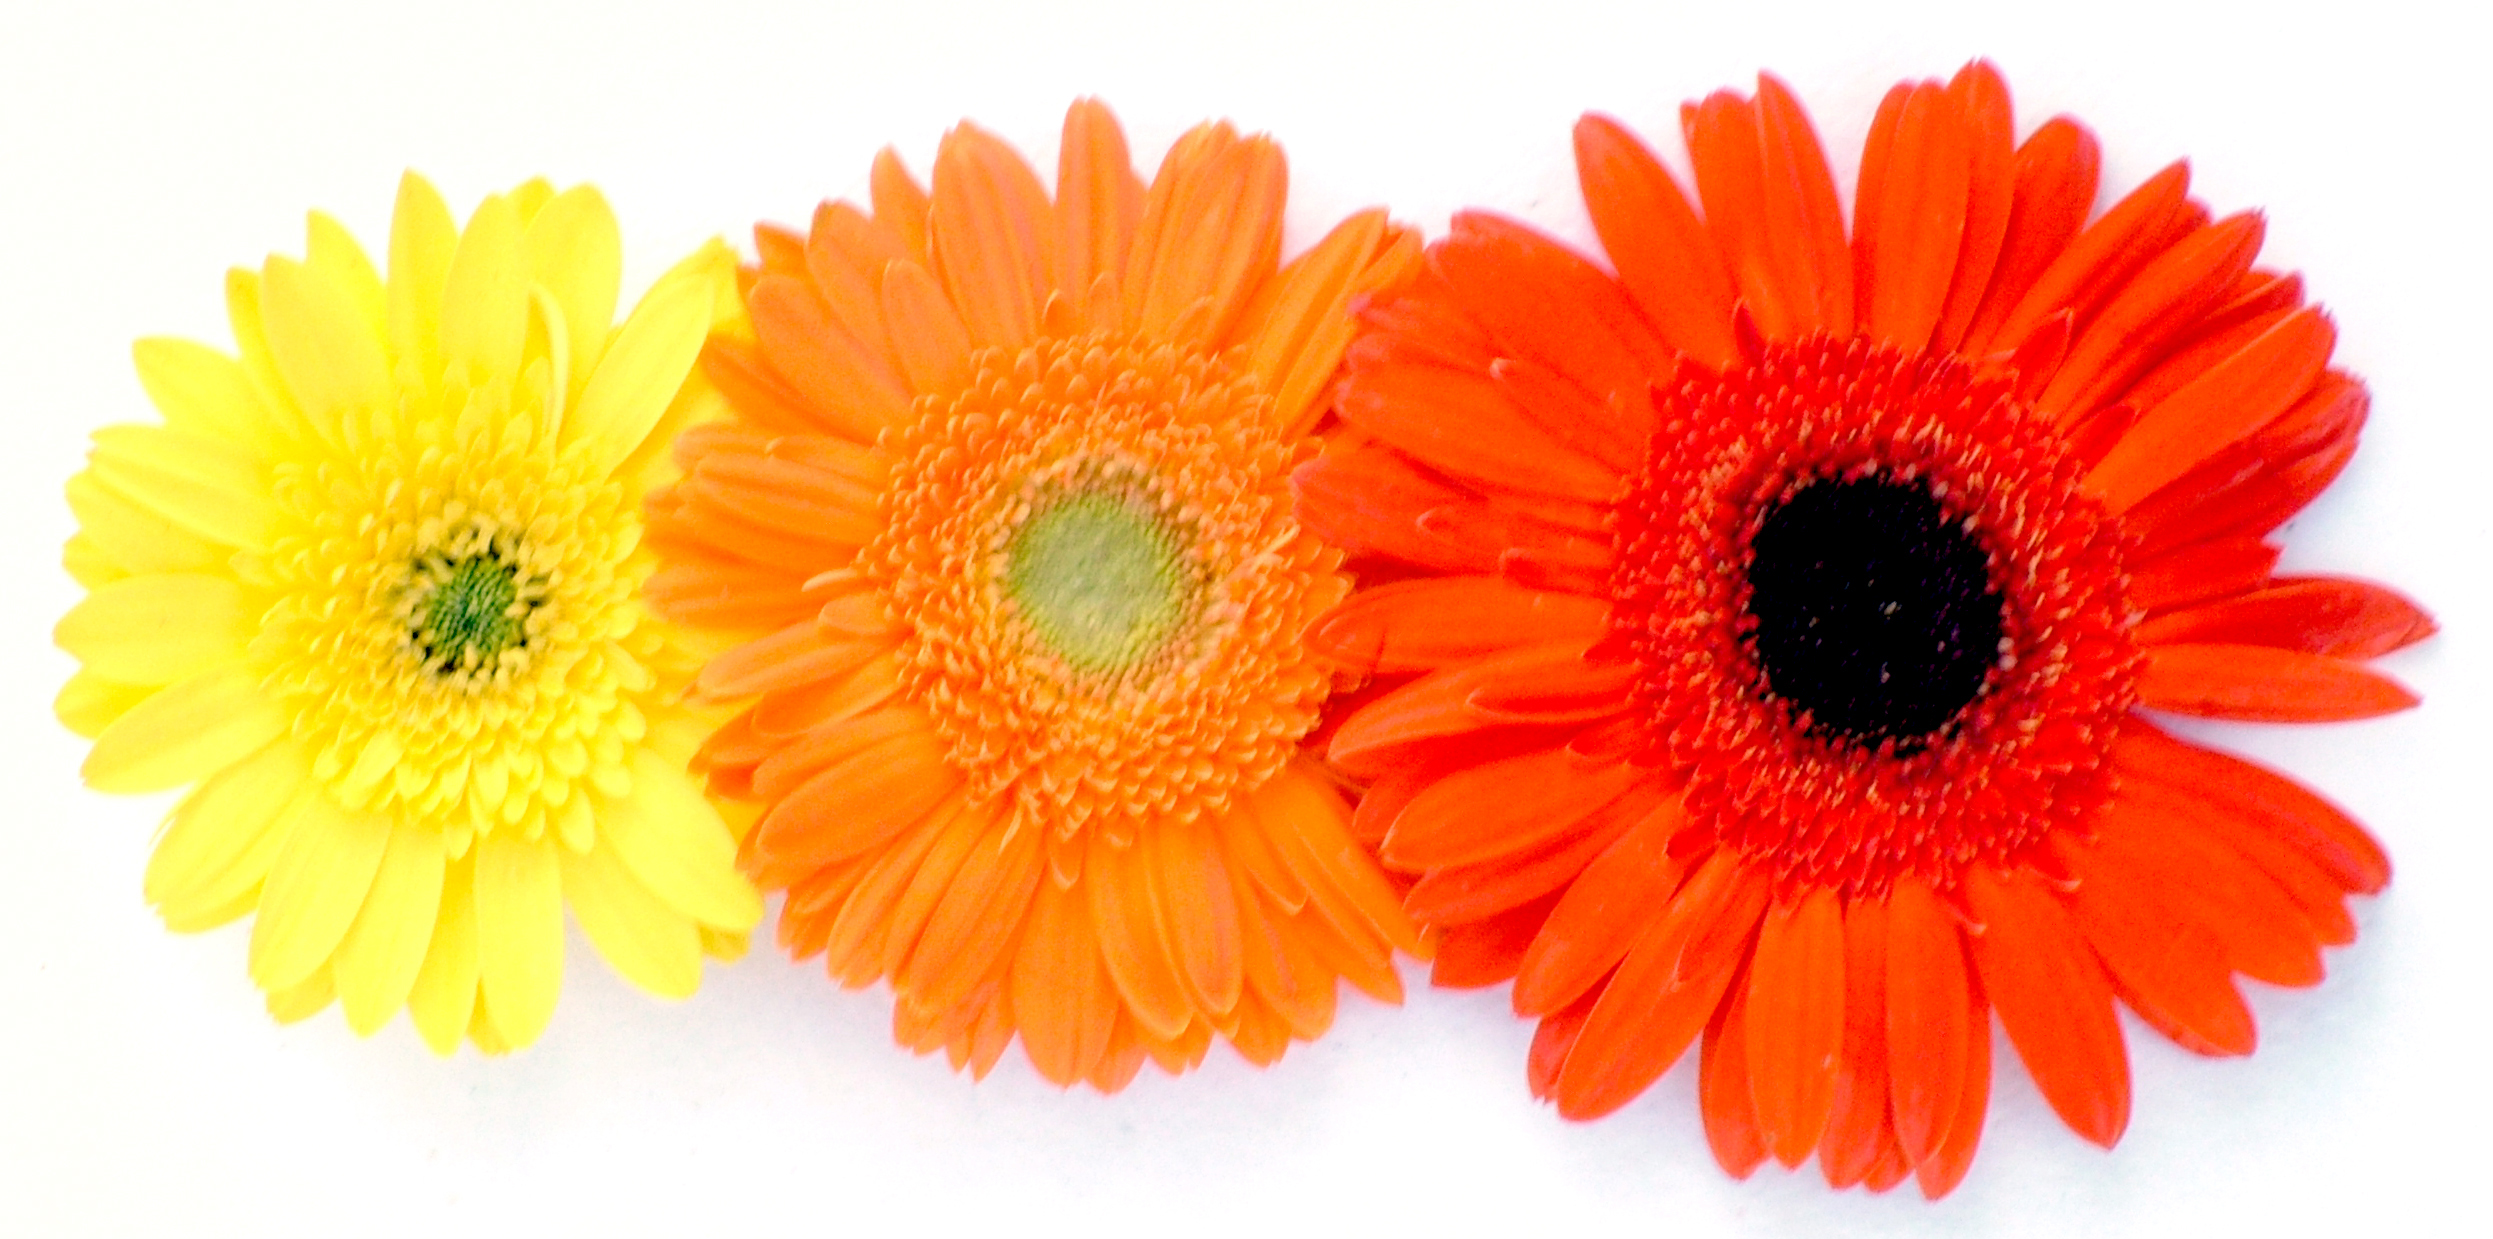 Types of Gerbera Daisies